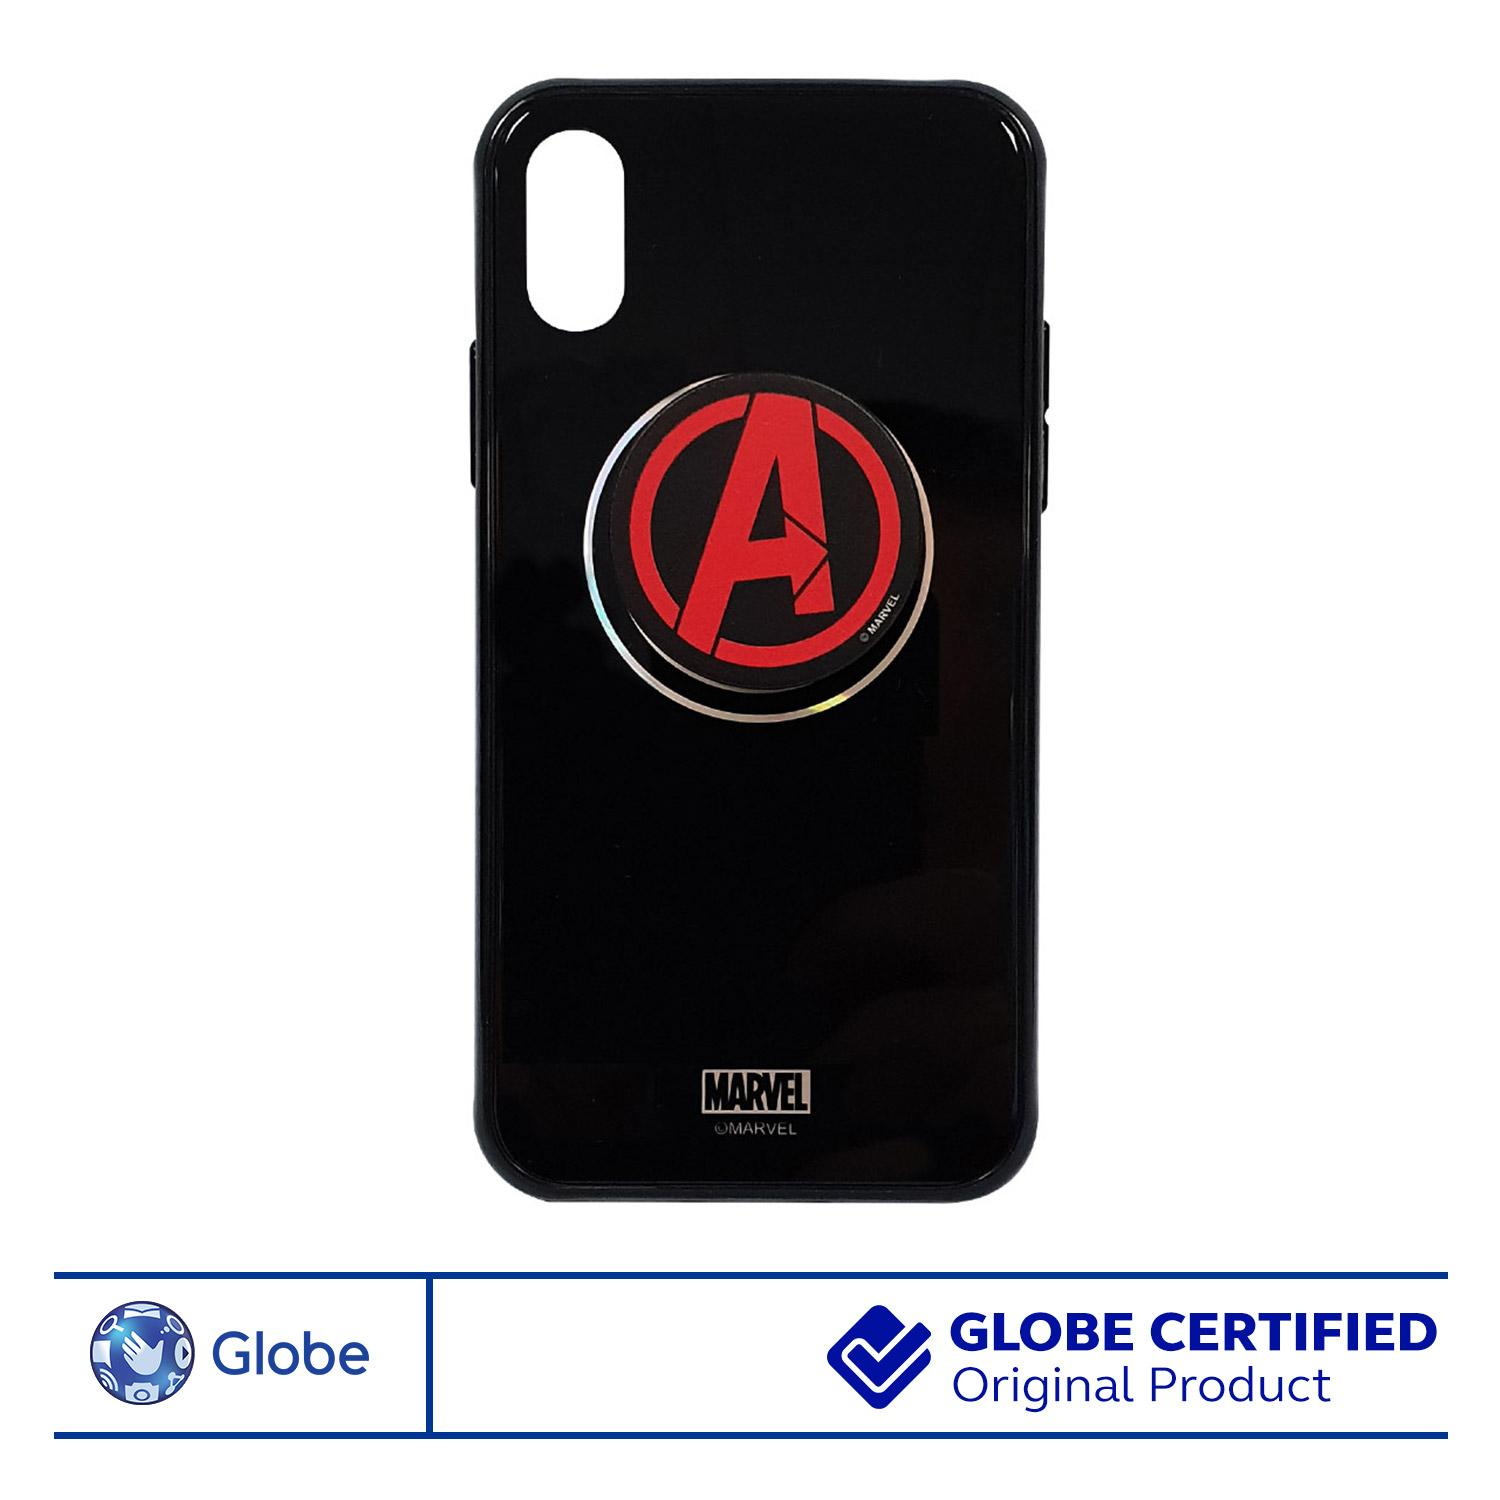 0917 Marvel Avengers Phone Grip By Globe Telecom, Inc..